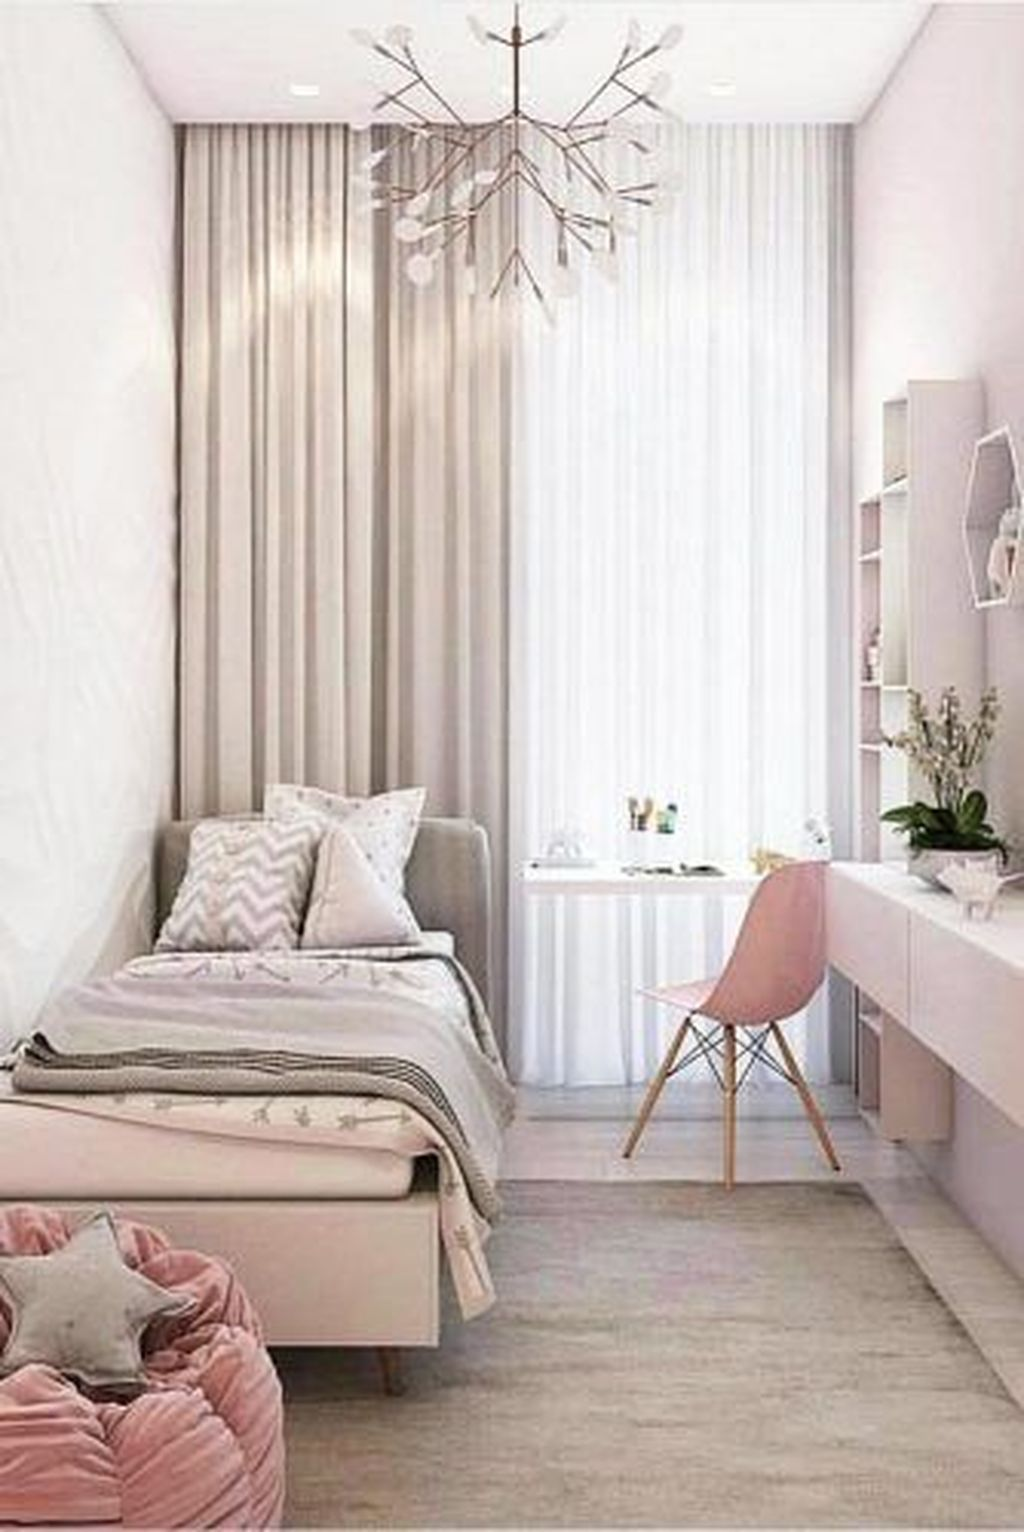 27 Small Bedroom Ideas Design Minimalist And Simple Small Apartment Bedrooms Stylish Bedroom Small Room Design